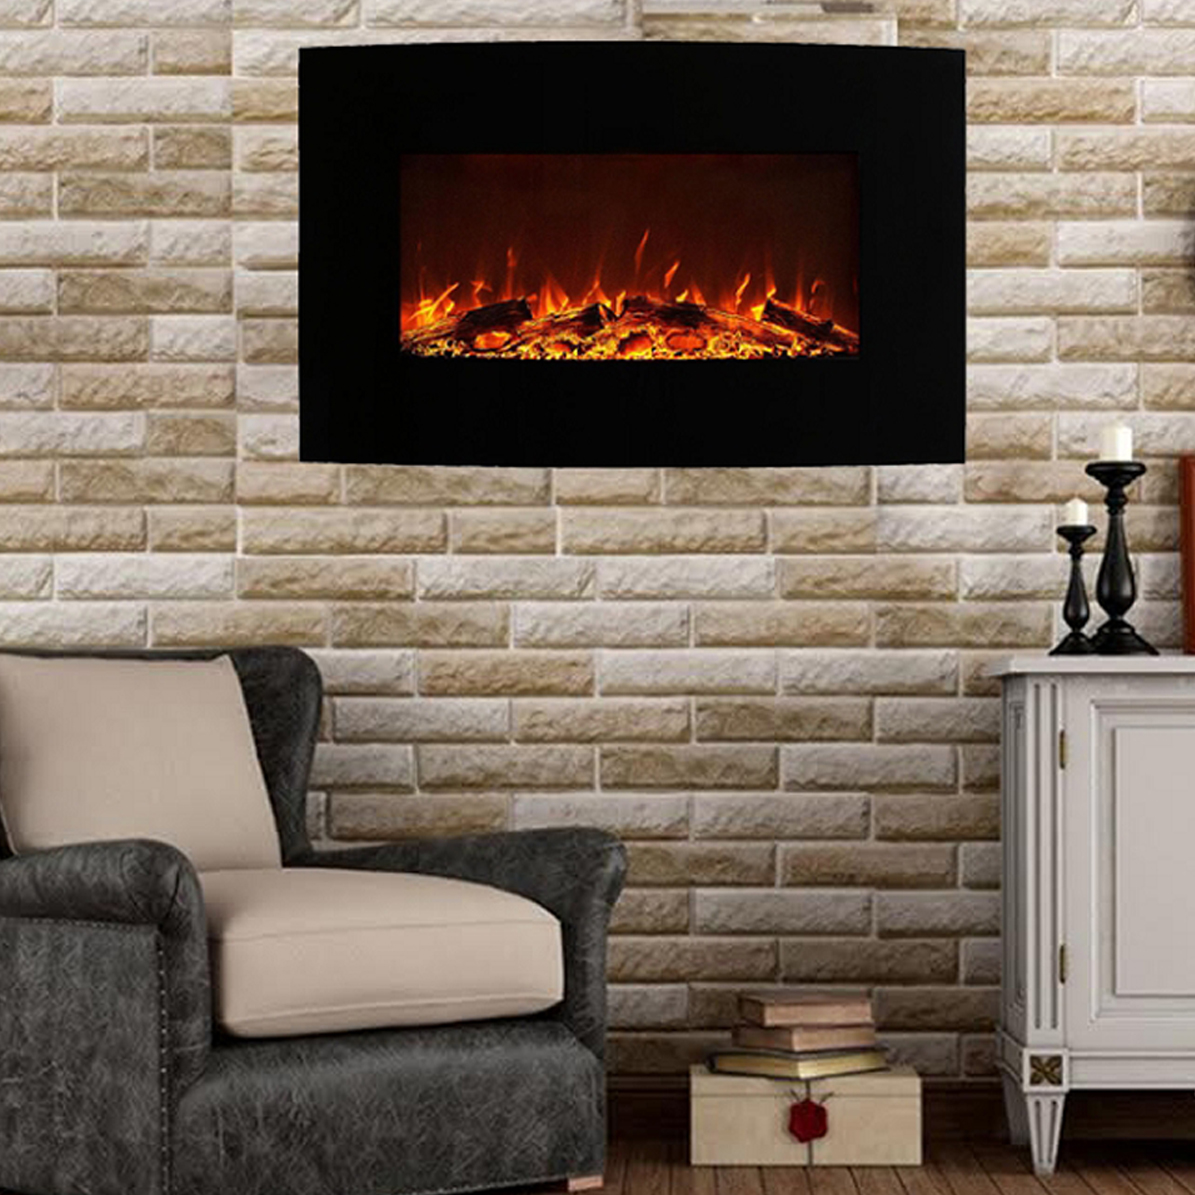 The Madison electric wall mounted fireplace offers a fireplace at a touch of a button. The chic yet bold black curved electric fireplace offers a three setting.